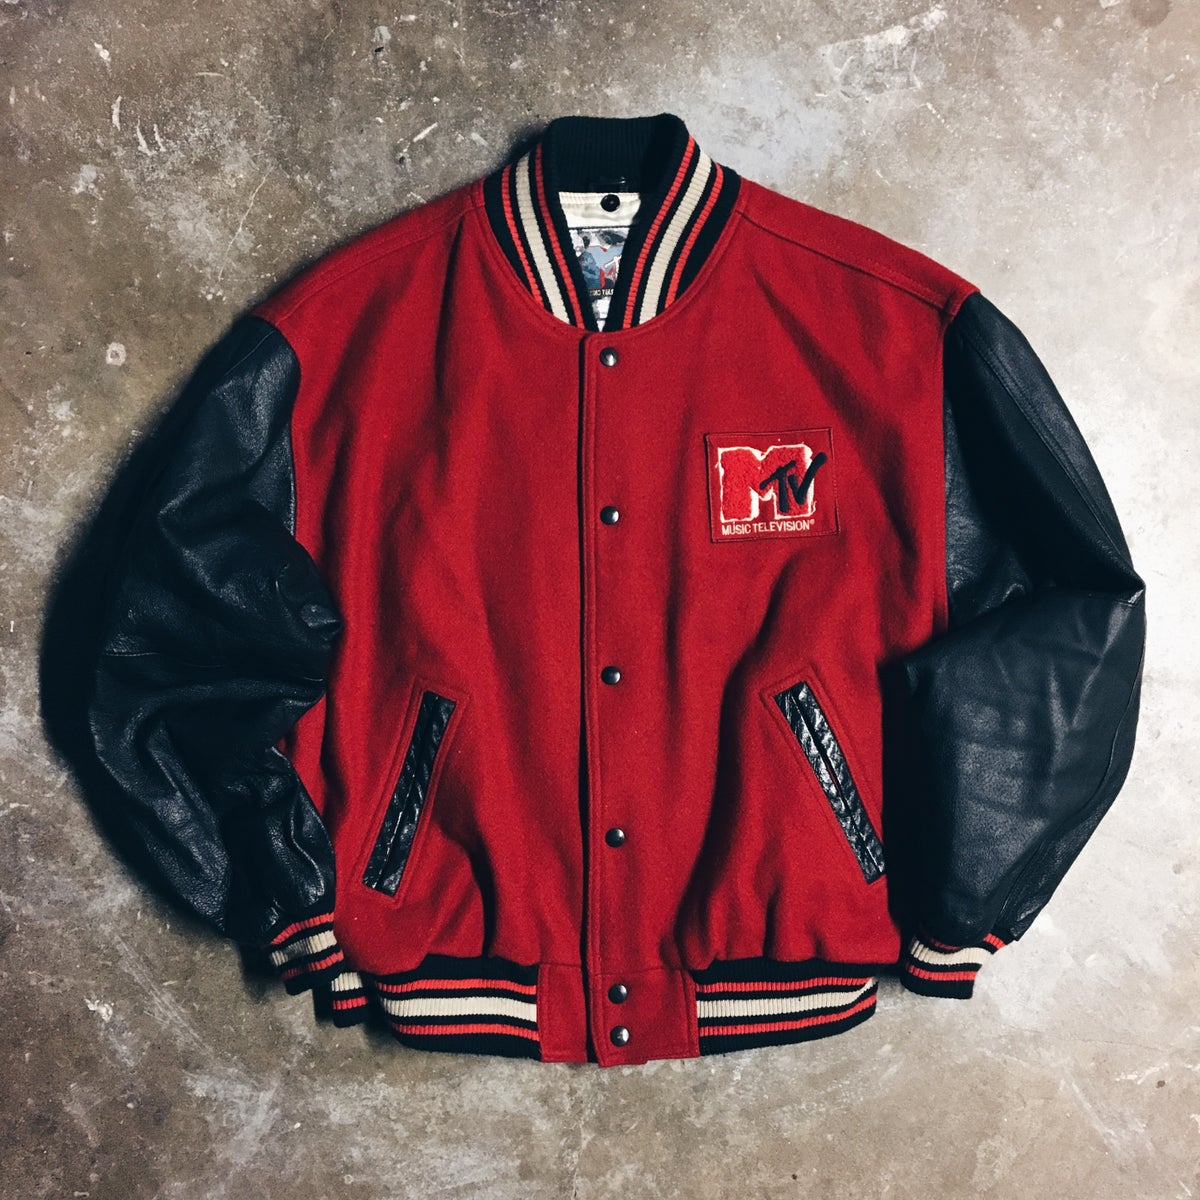 Image of Original 1992 MTV Varsity Jacket.